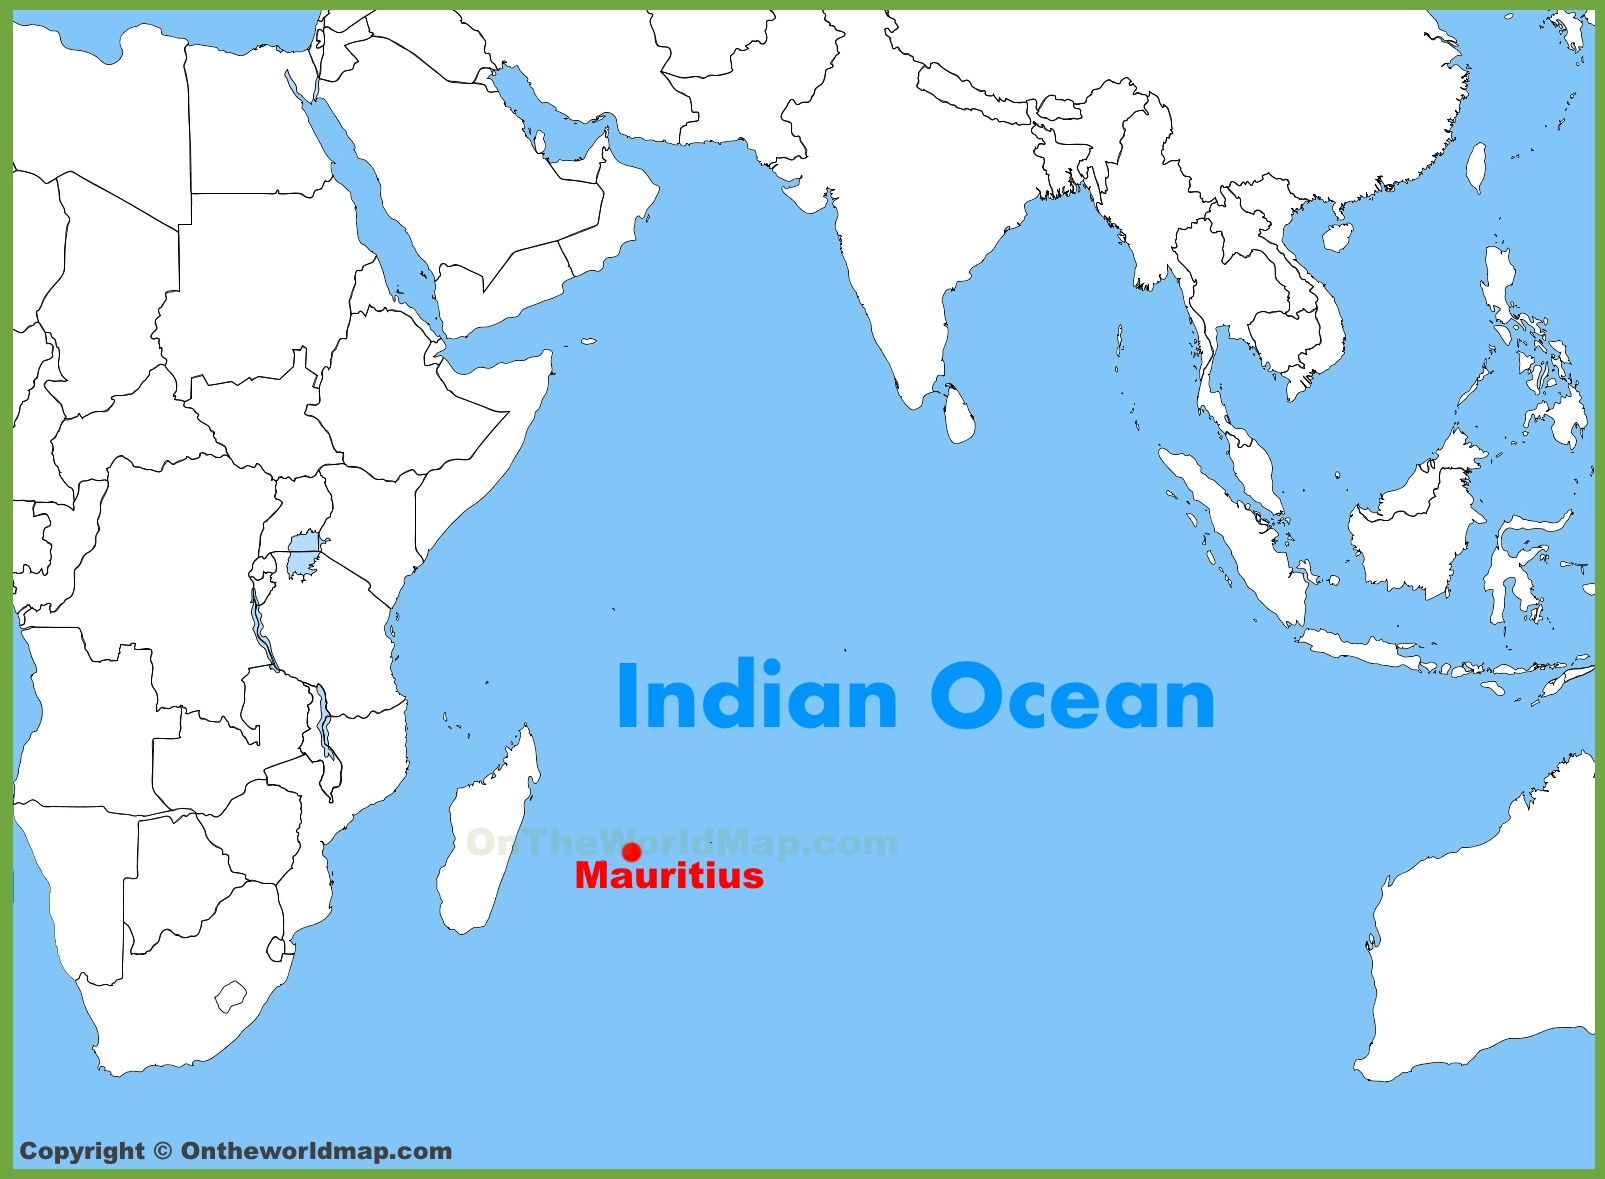 Mauritius Location On The Indian Ocean Map - Mauritius location in world map